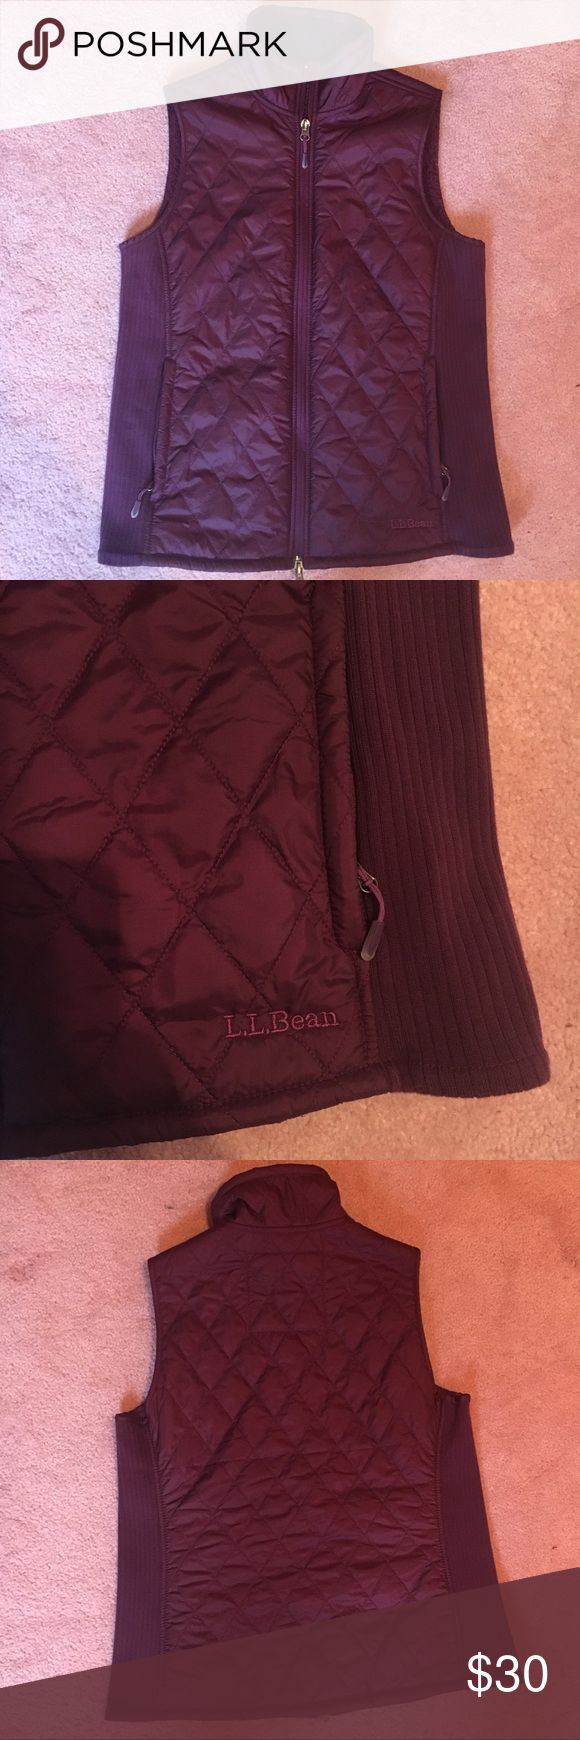 L.L. Bean Dark Purple Vest Willing to negotiate, just submit an offer! :) Perfect for the fall or winter! This gorgeous dark purple vest has been worn only once or twice with no signs of wear. Quilted outside and fleece inside. 2 zippered pockets. L.L. Bean Jackets & Coats Vests